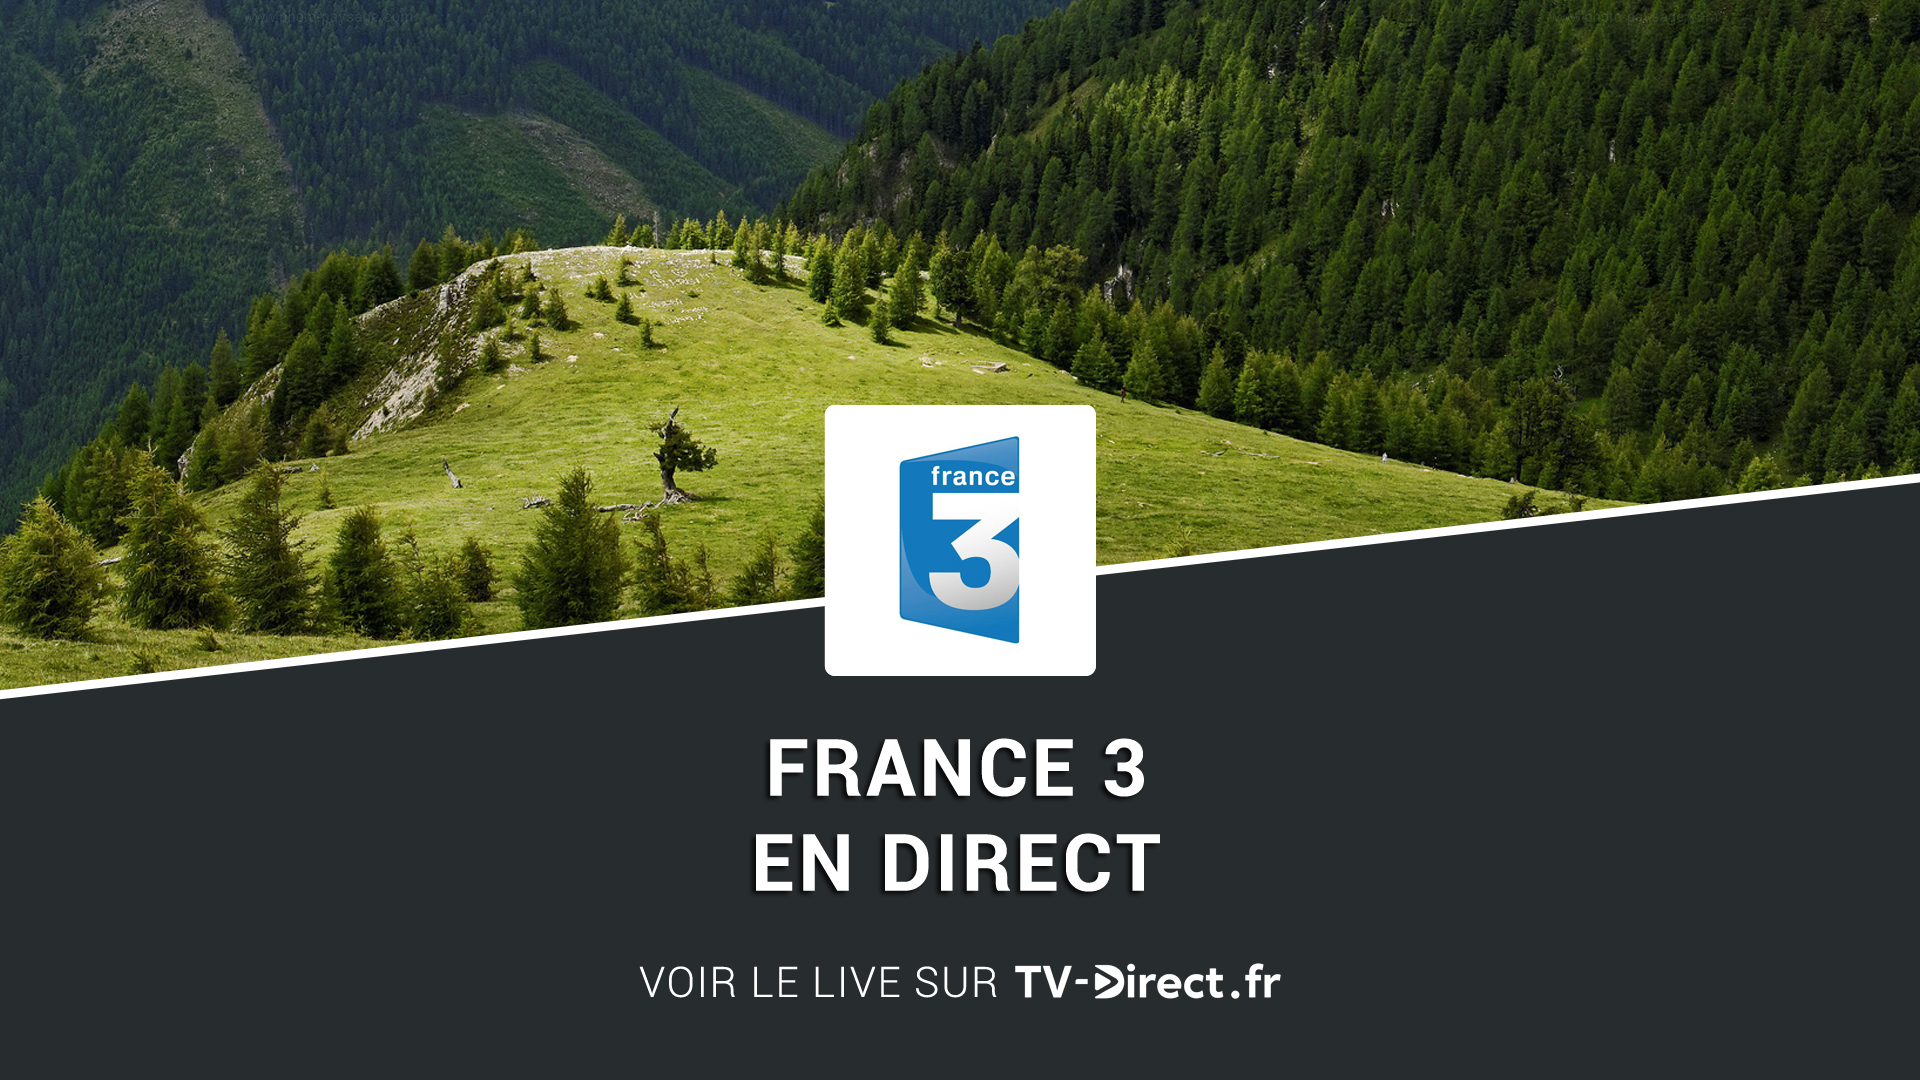 france 3 direct regarder france 3 en direct live sur internet. Black Bedroom Furniture Sets. Home Design Ideas